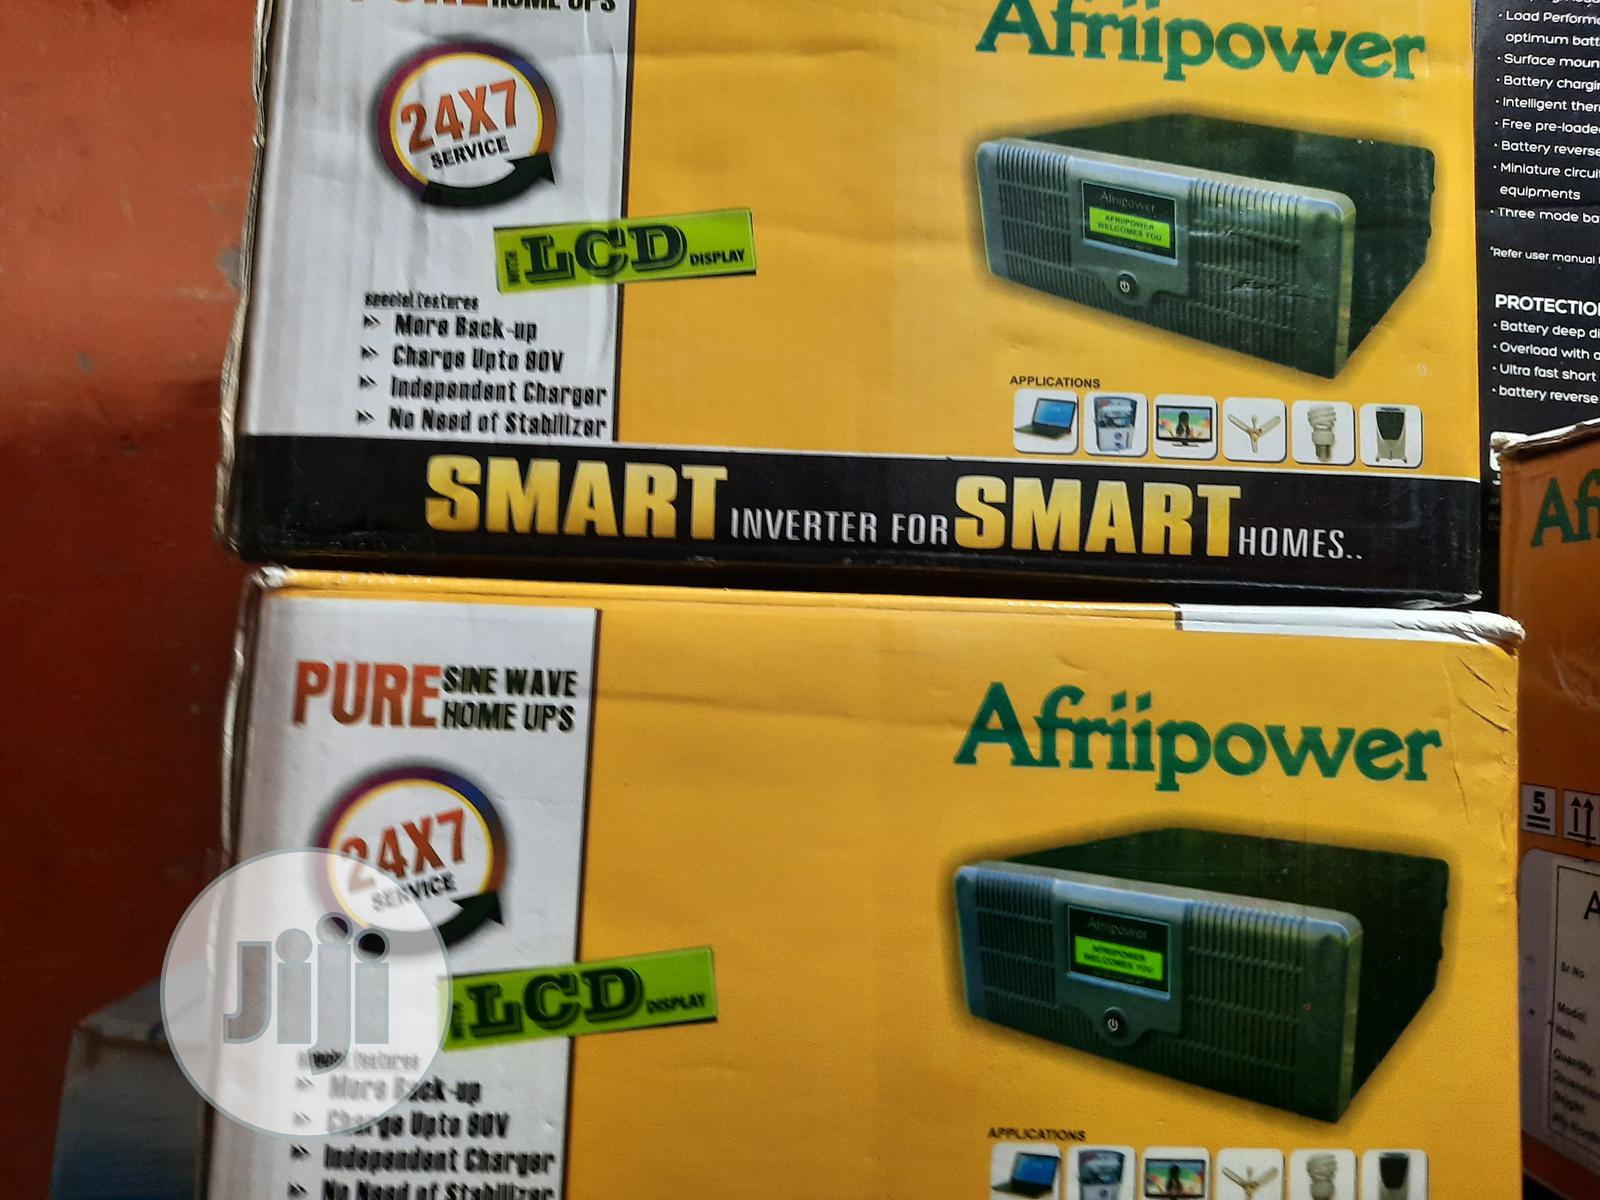 Afriipower Inverter 12v/1kva Indian Product